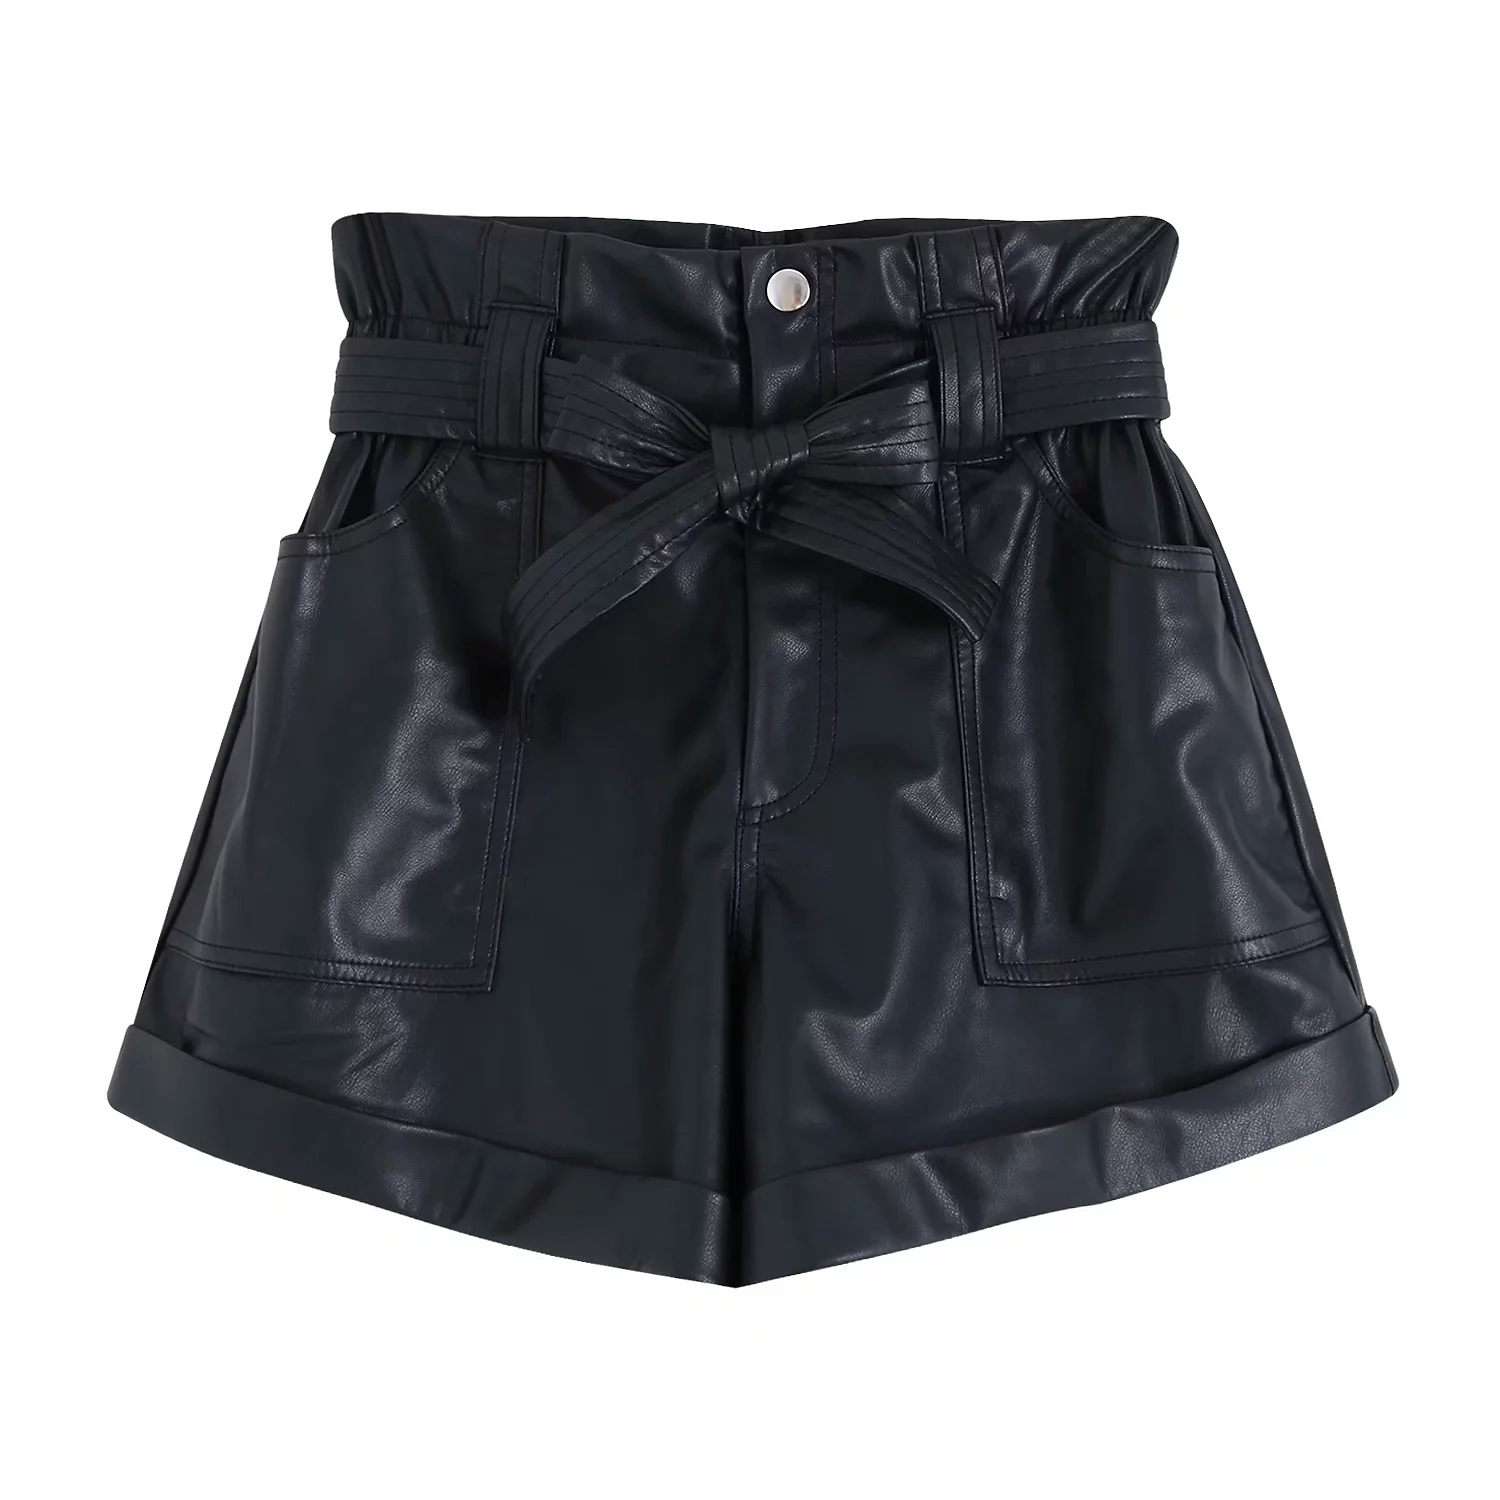 Fashion Womens PU Leather Shorts High Waist Loose Harem Shorts Zora Chic Drawstring Faux Leather Fall Za Shorts Streetwear 2019